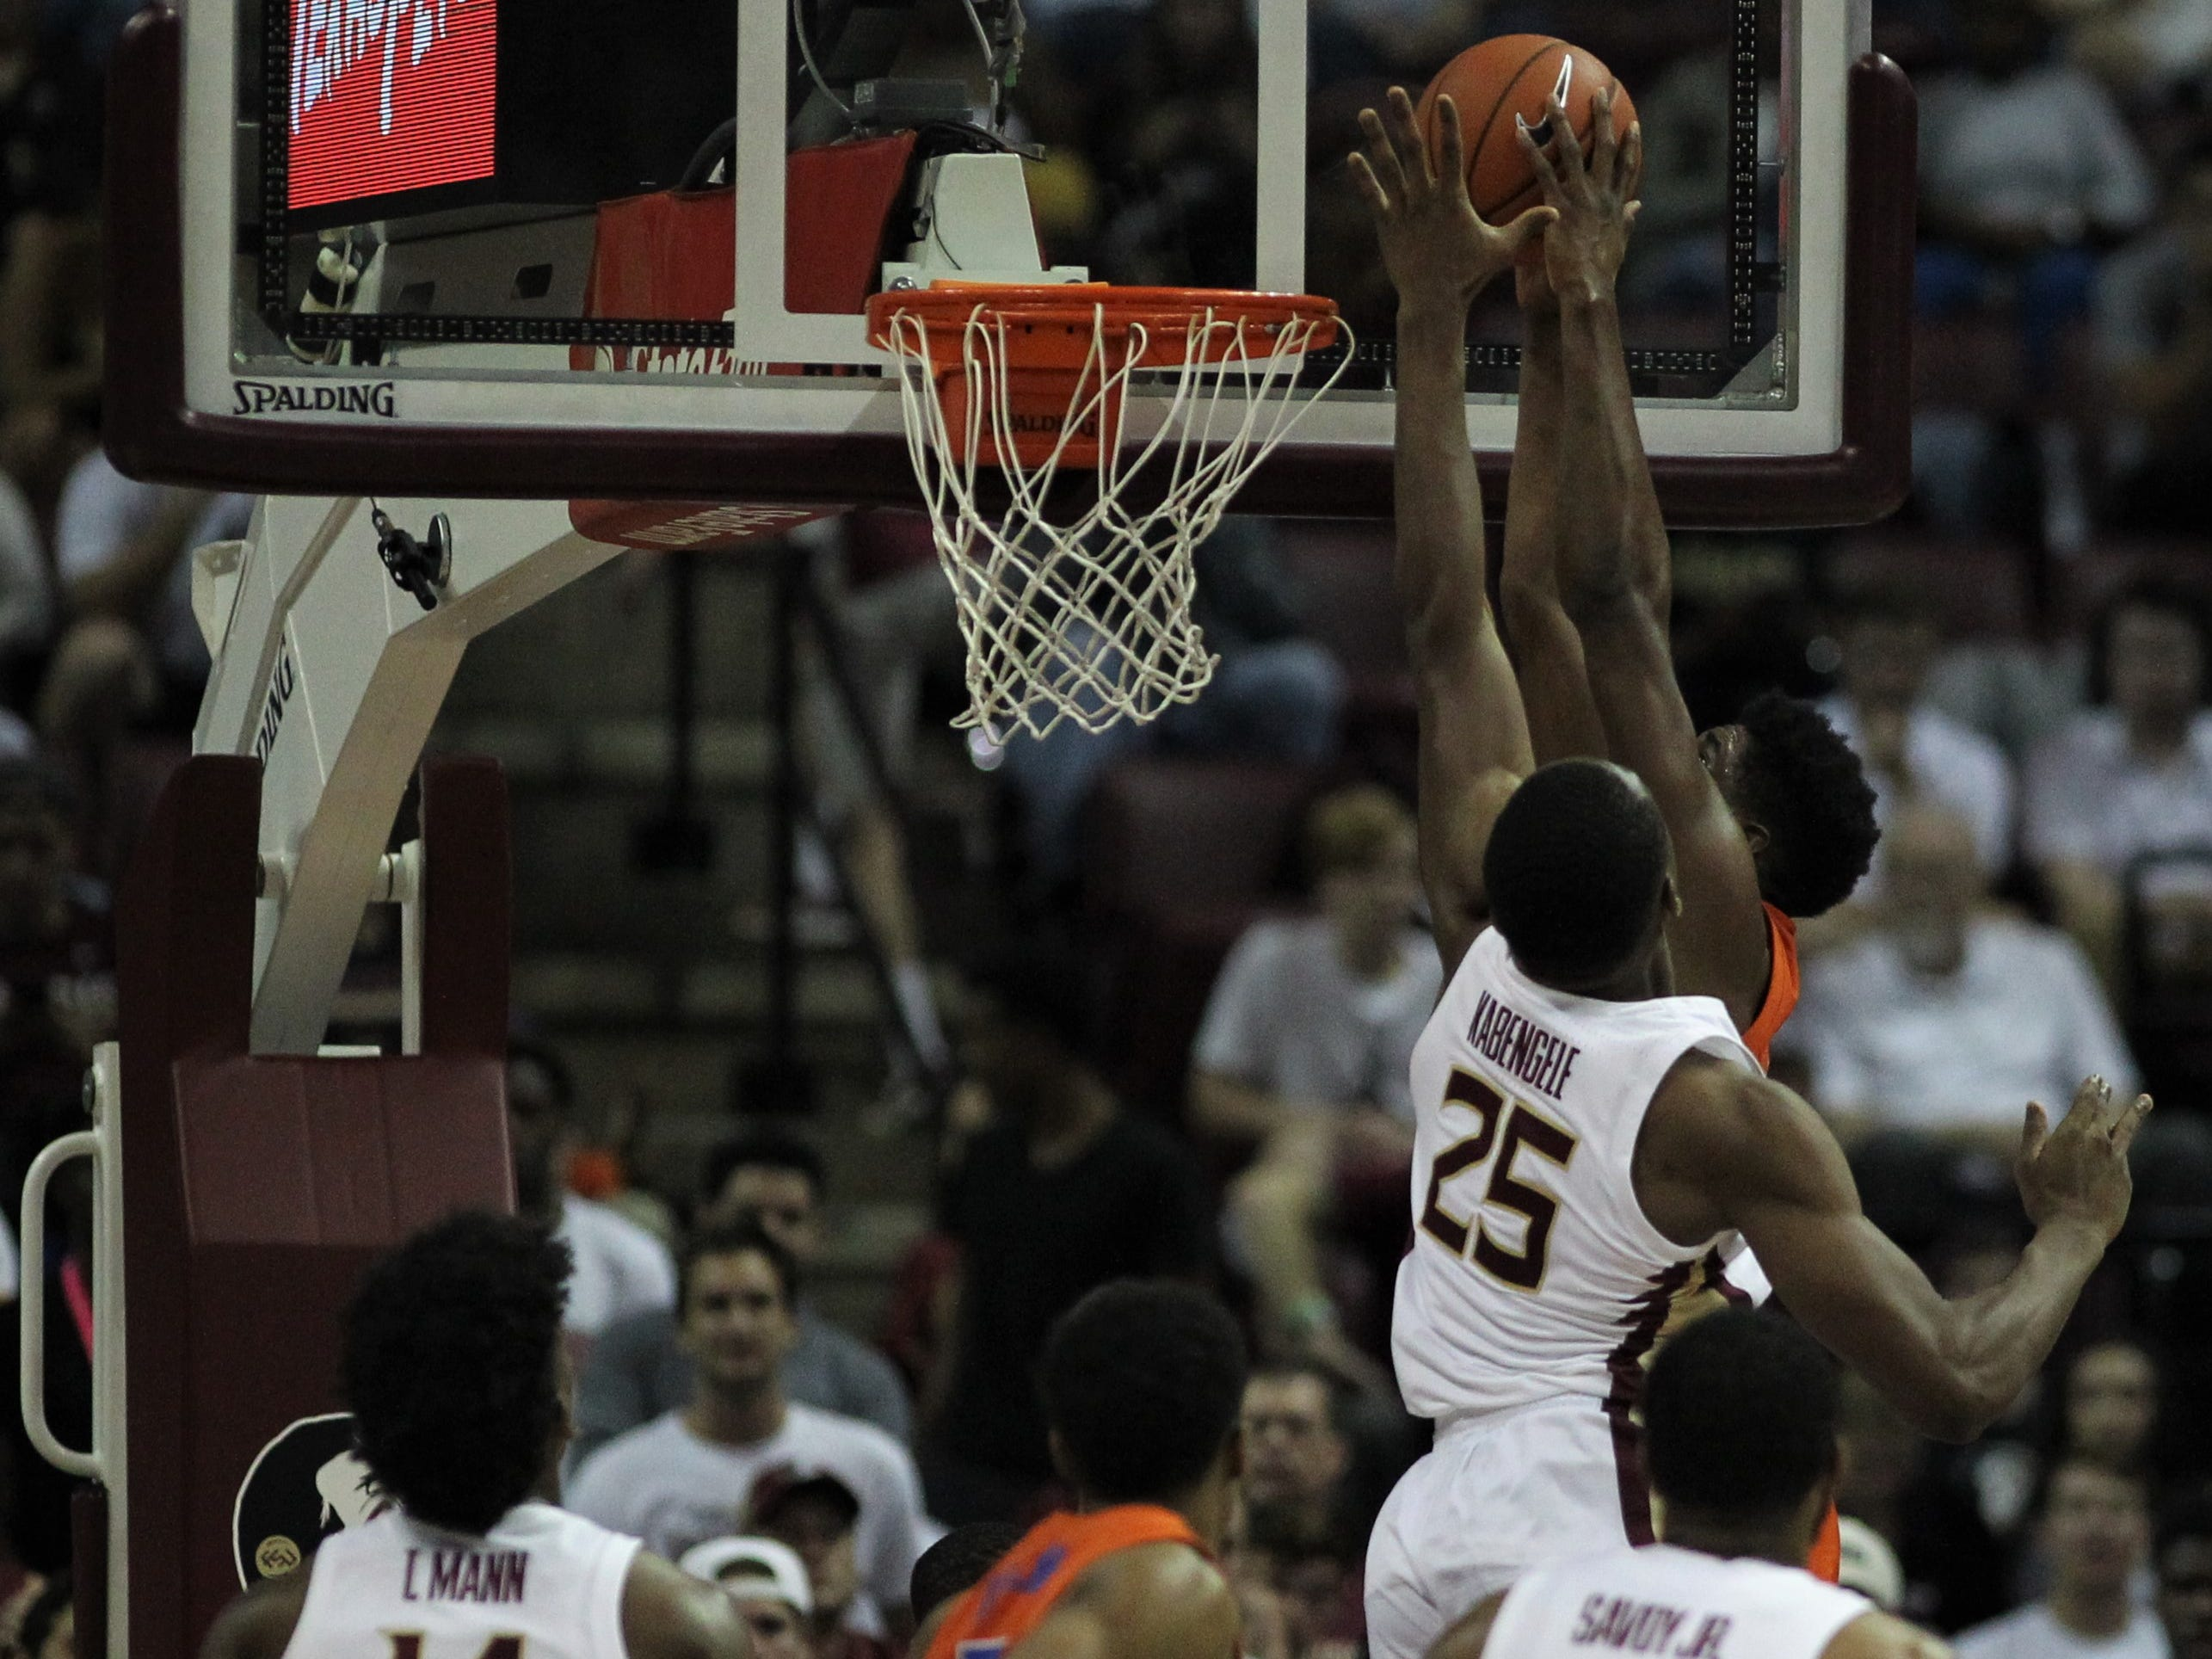 Florida State's Mfiondu Kabengele defends Florida's scoring attempt in the post during the Sunshine Showdown game Tuesday at the Tucker Civic Center.